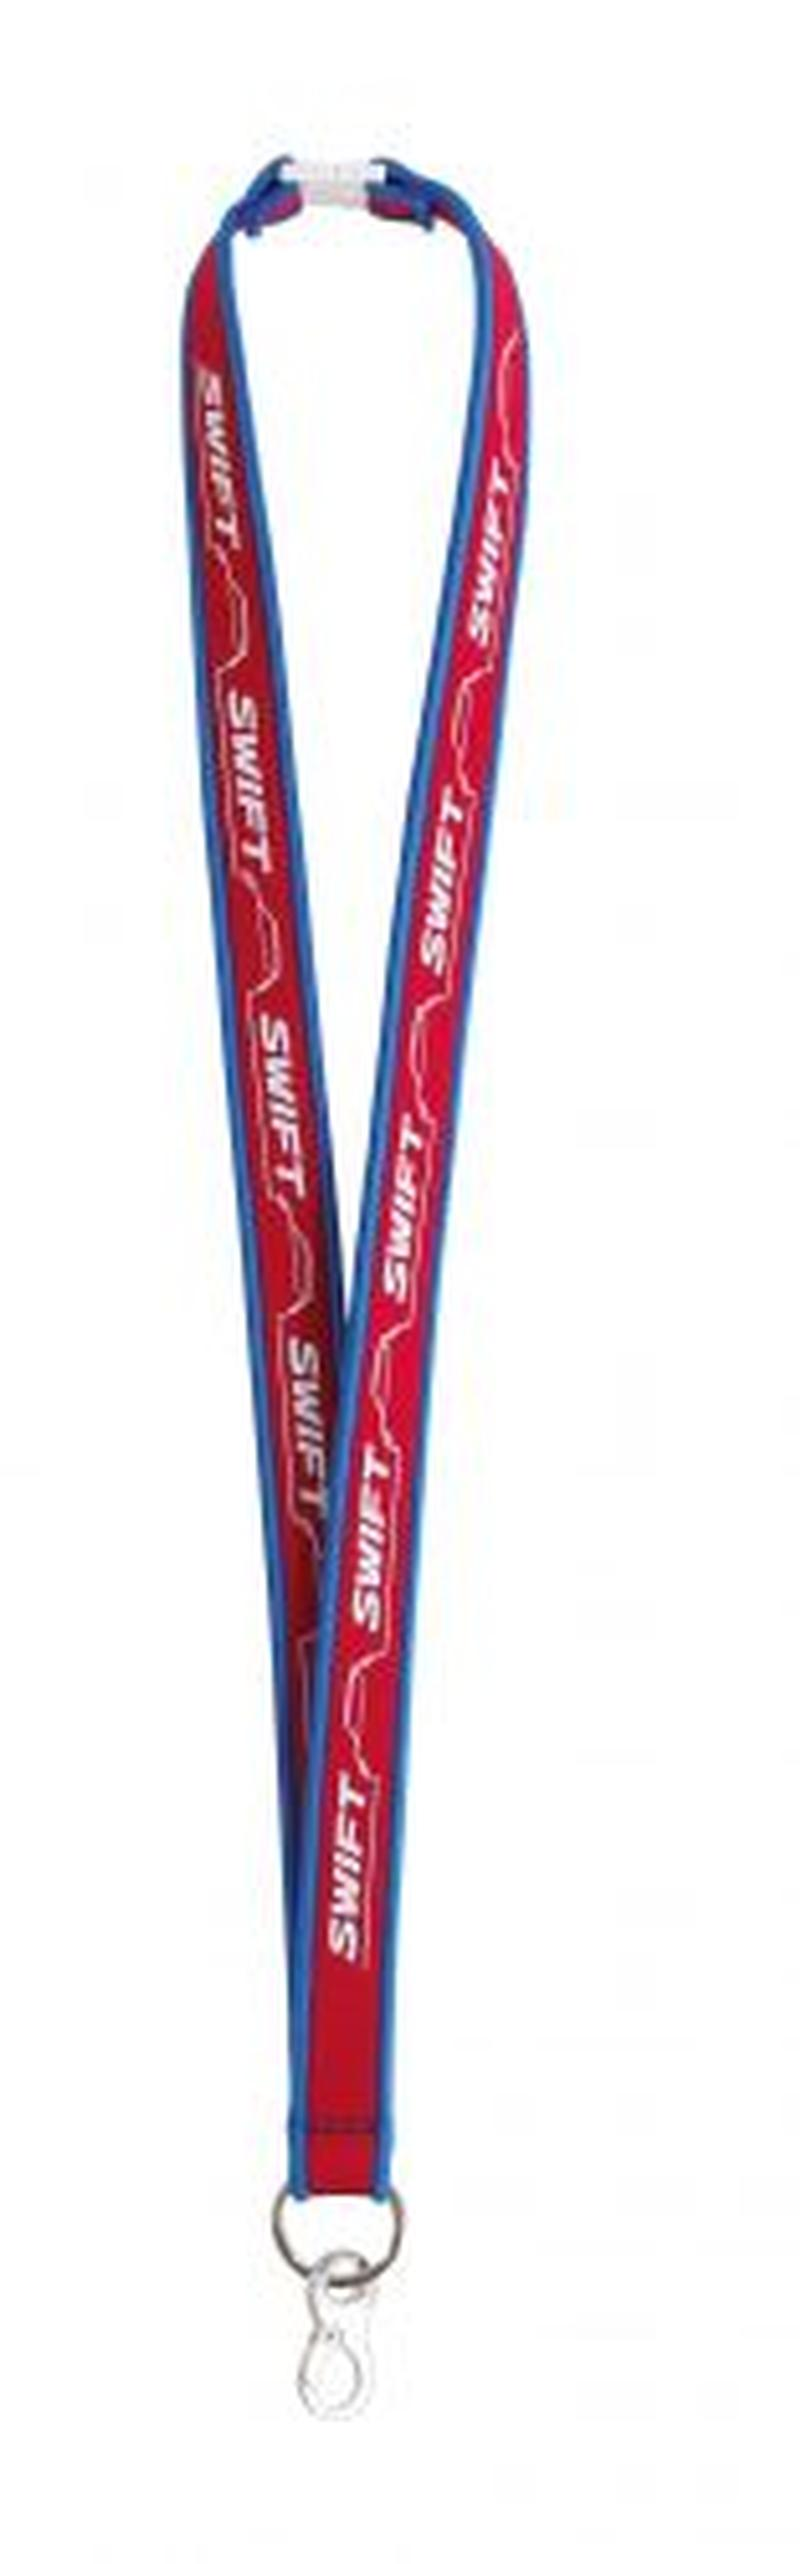 Swift Lanyard